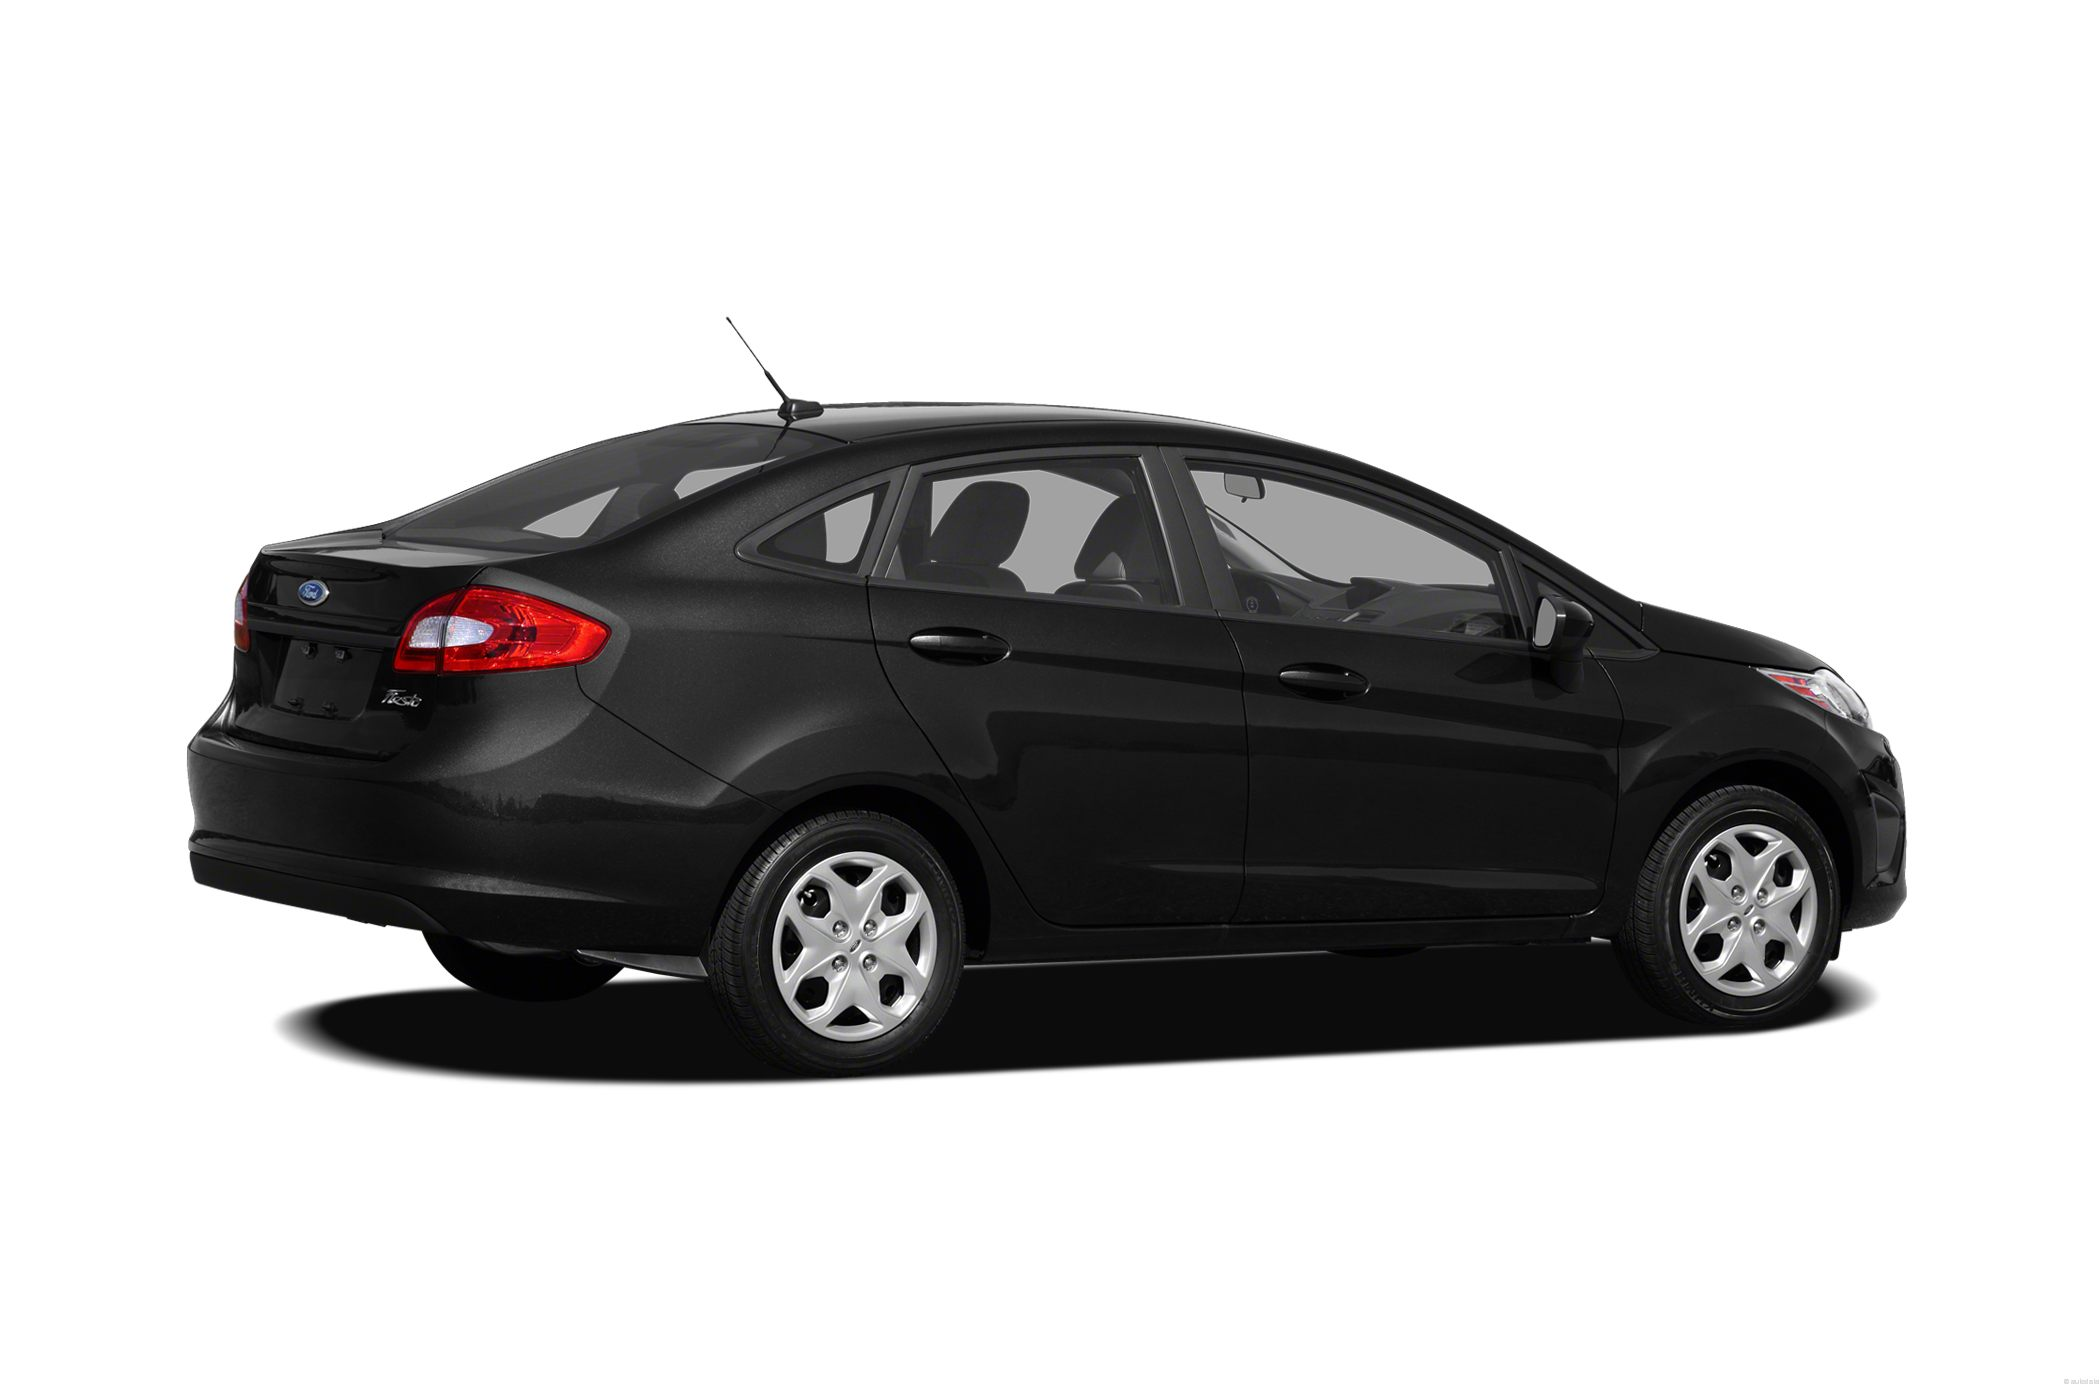 Free Car Faxs New 2012 ford Fiesta Price Photos Reviews Features